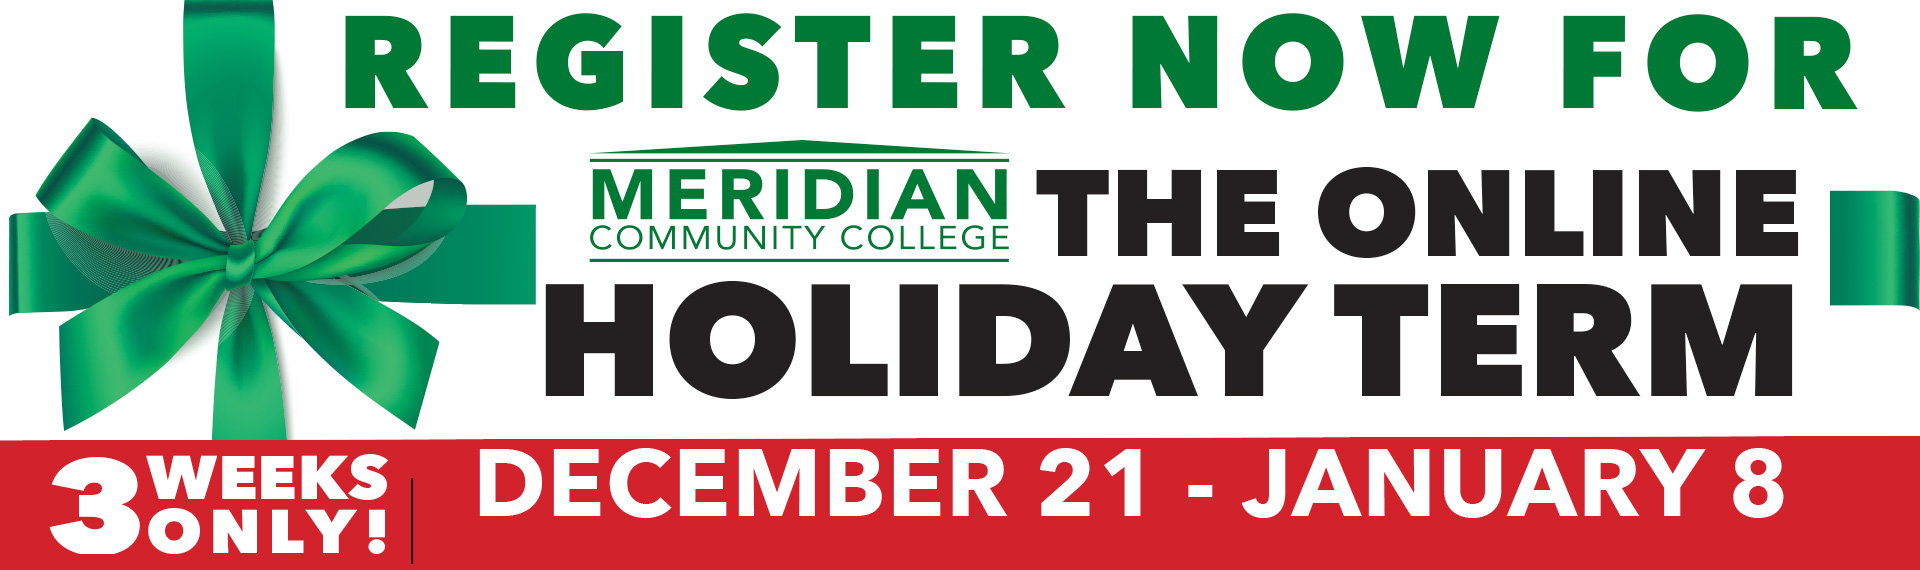 Register for Holiday Term